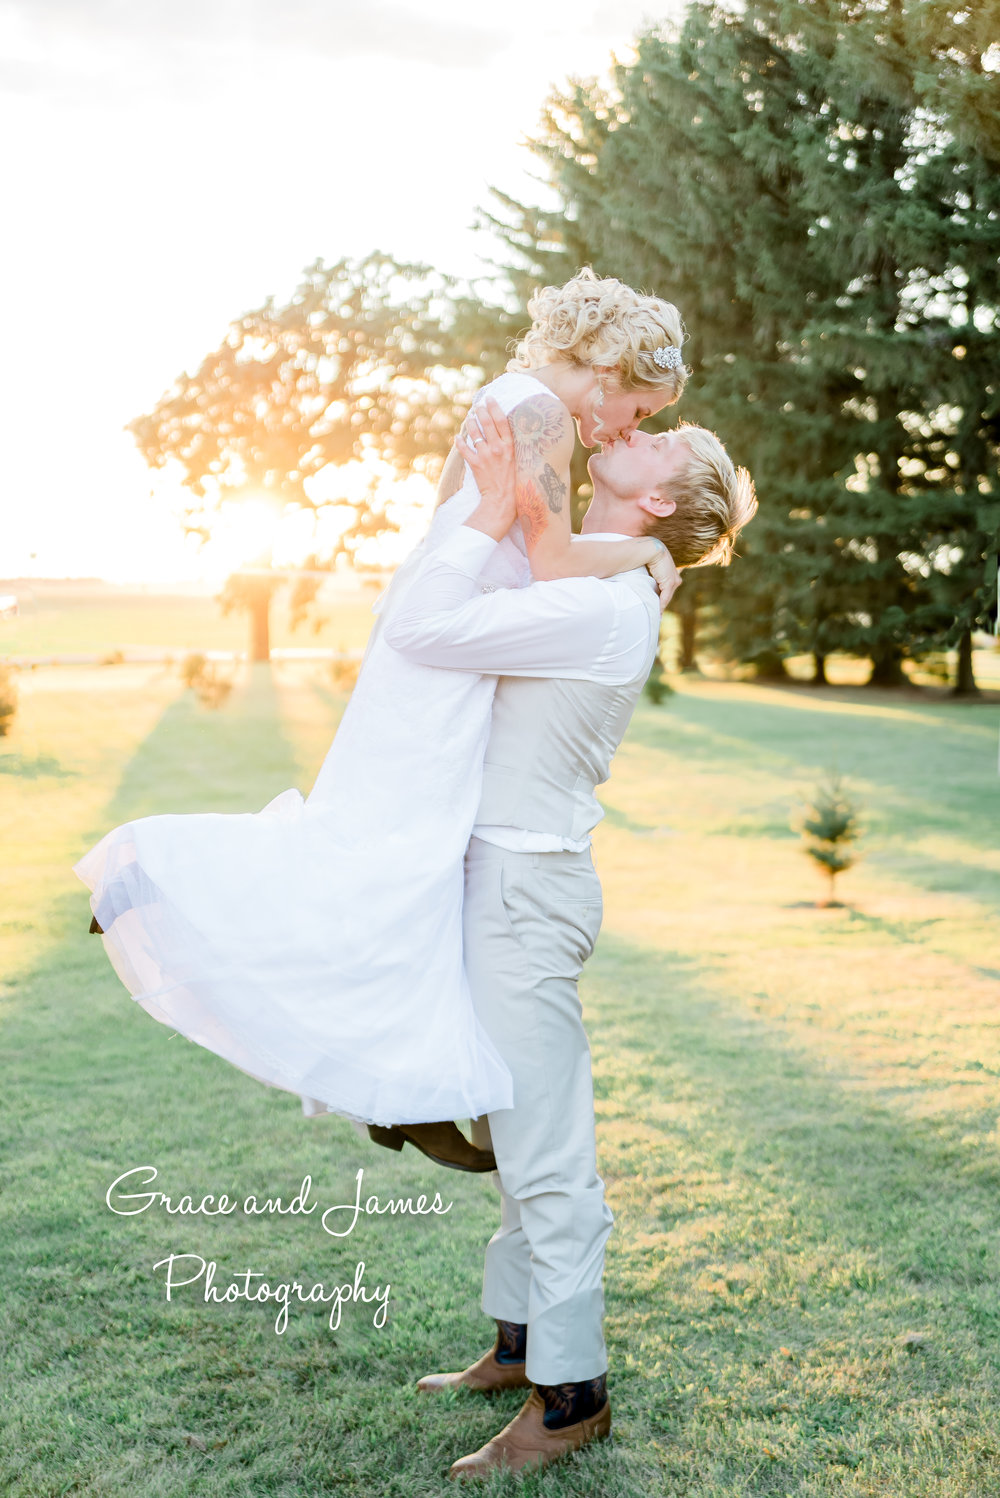 That sun, though! This seriously was one of my favorite images from their wedding day!